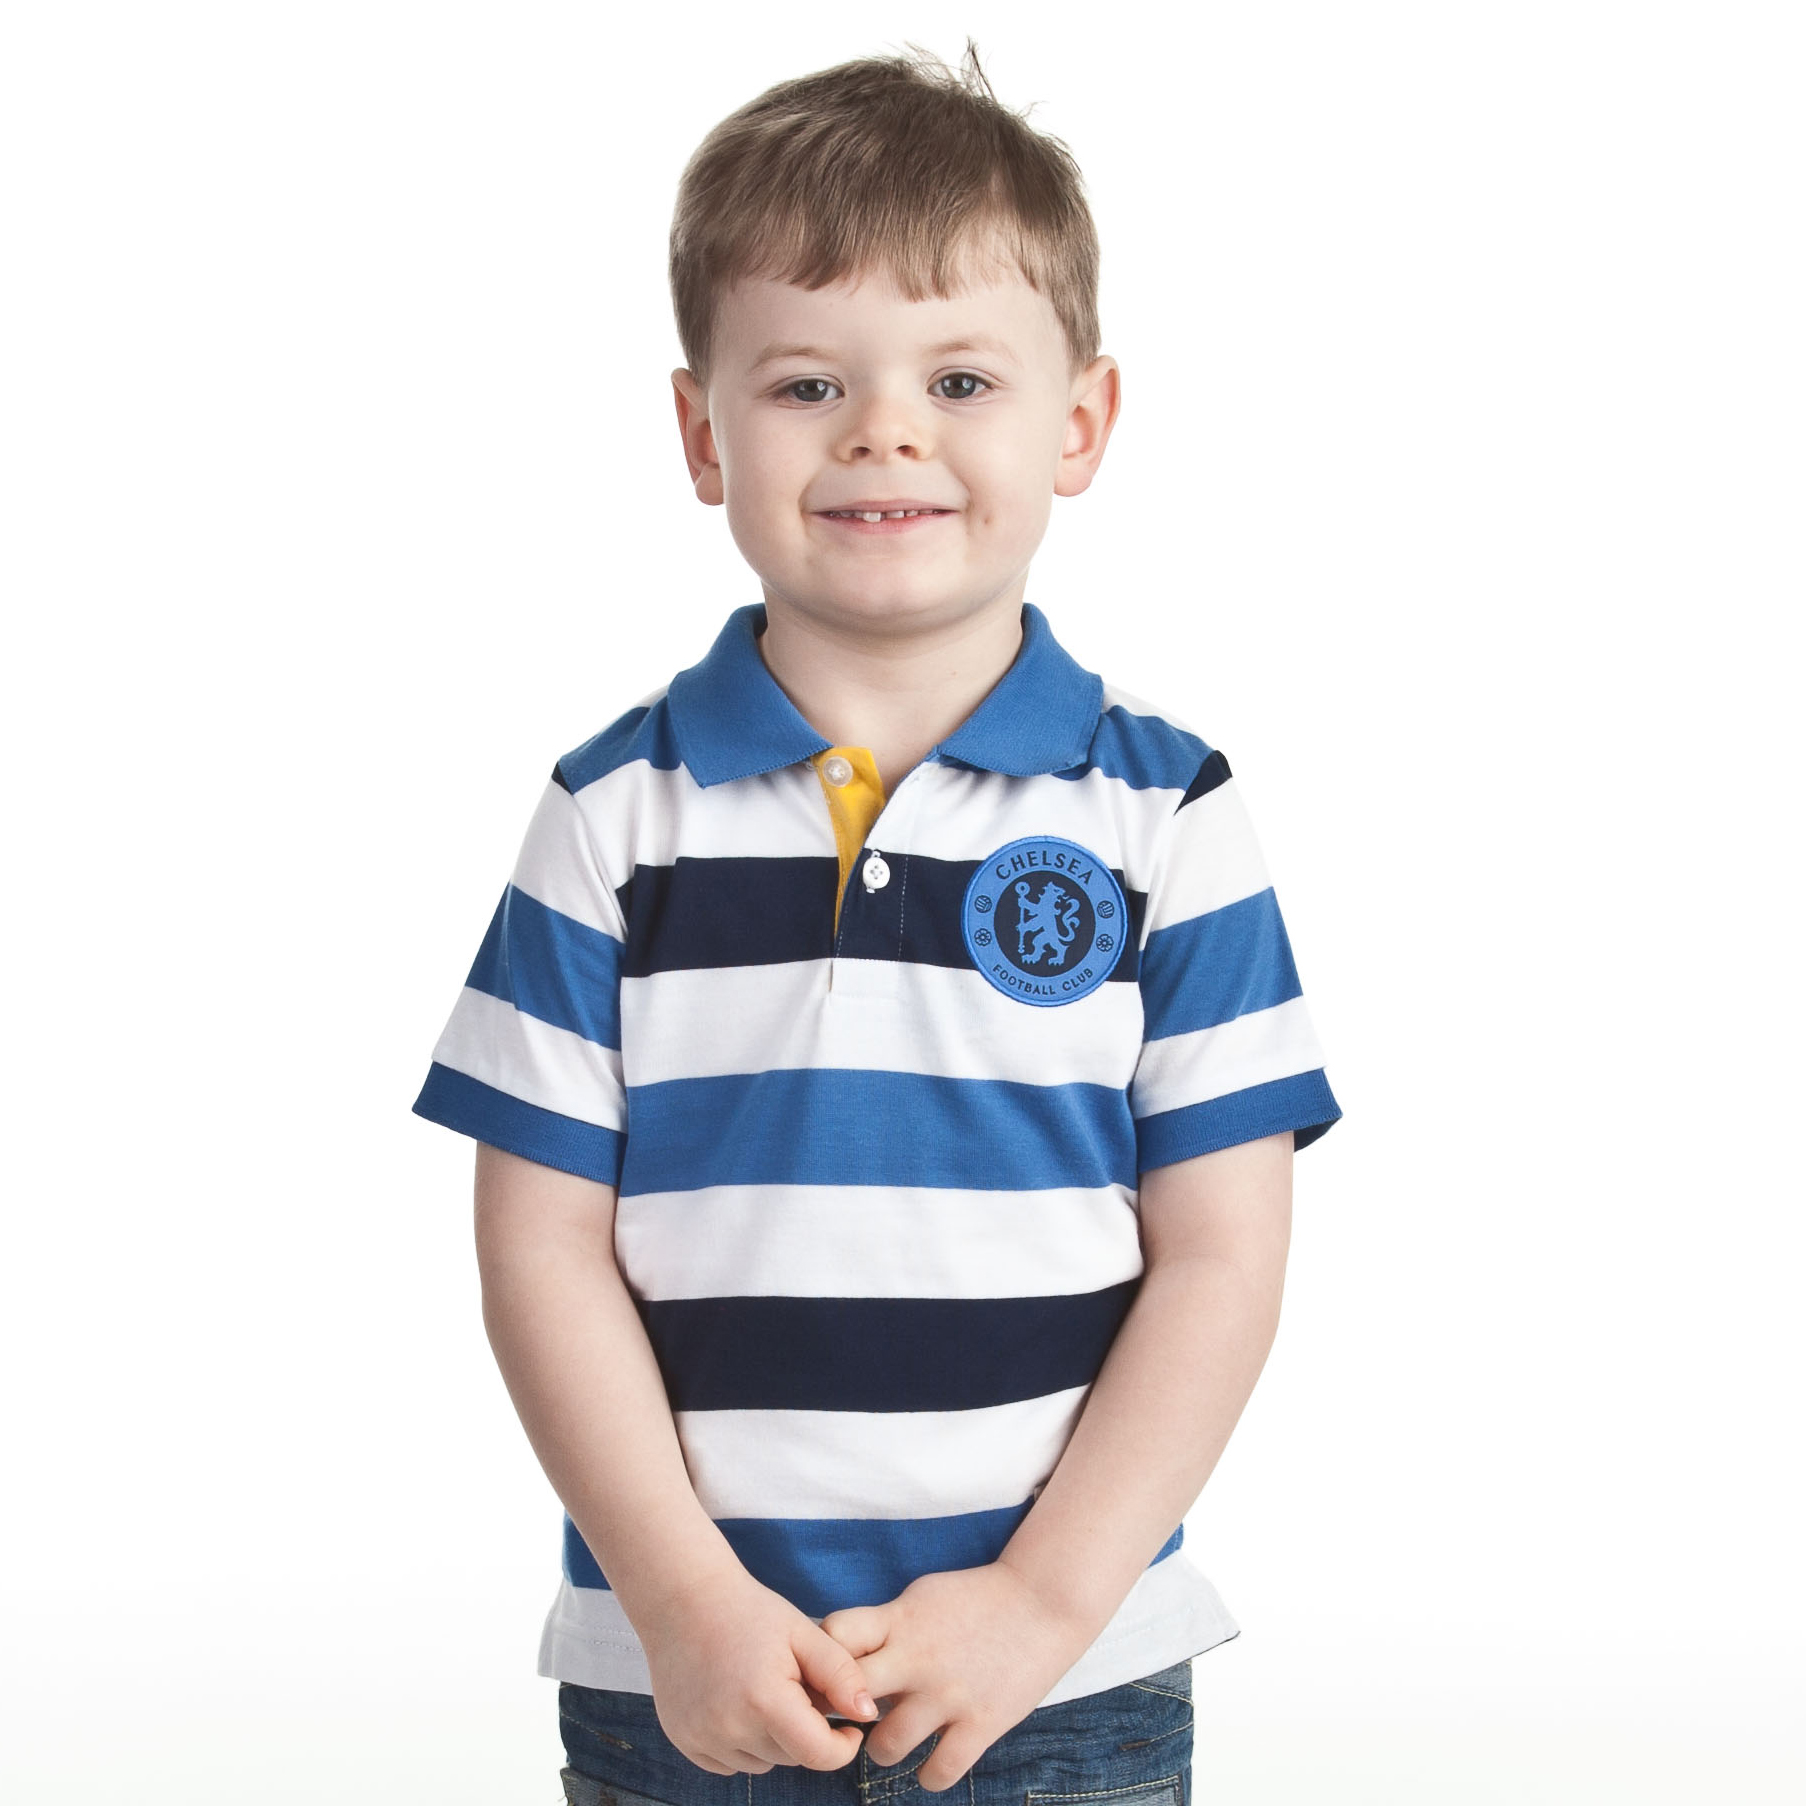 Chelsea  Fashion Yarn Dye Striped Polo - White/Strong Blue/Navy - Infant Boys